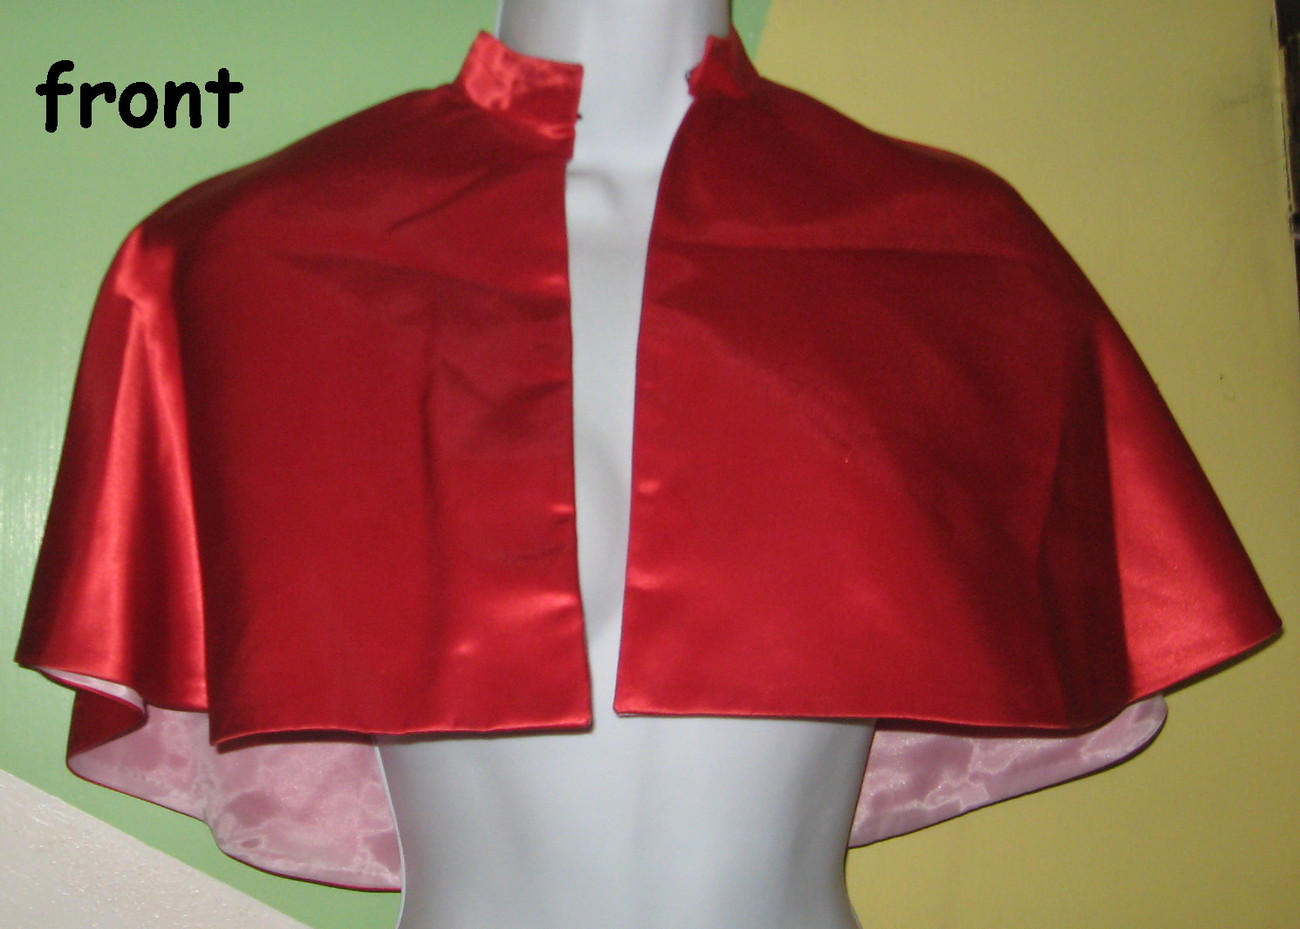 Choir Robe Collar 9 Red child cape USA Handcrafted theater community school H17A